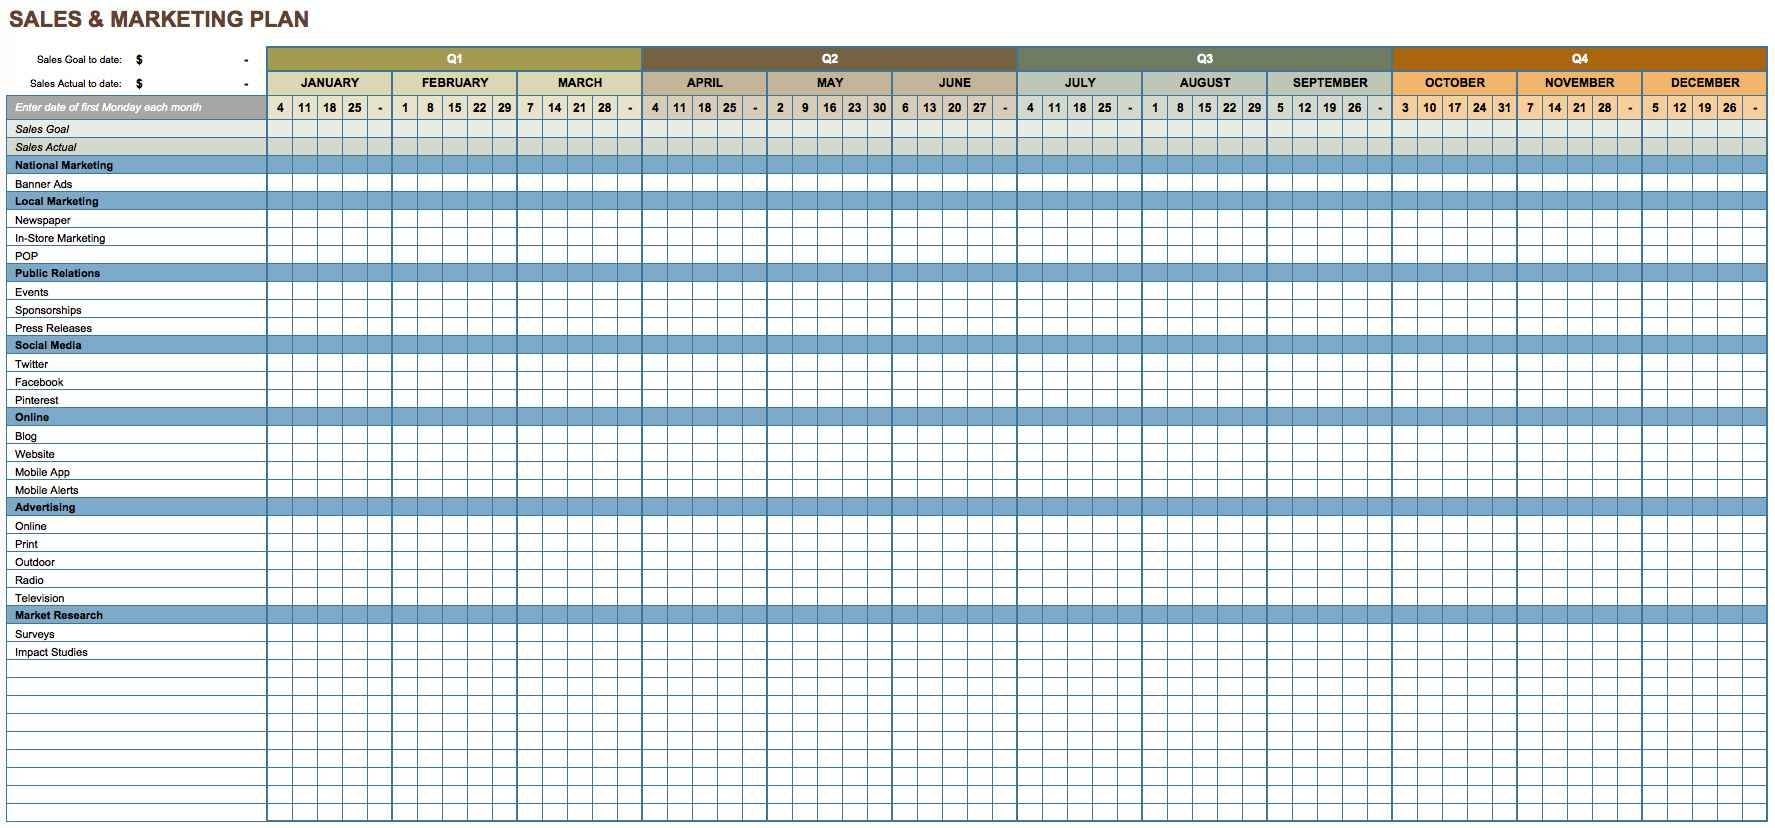 download sample excel file with data